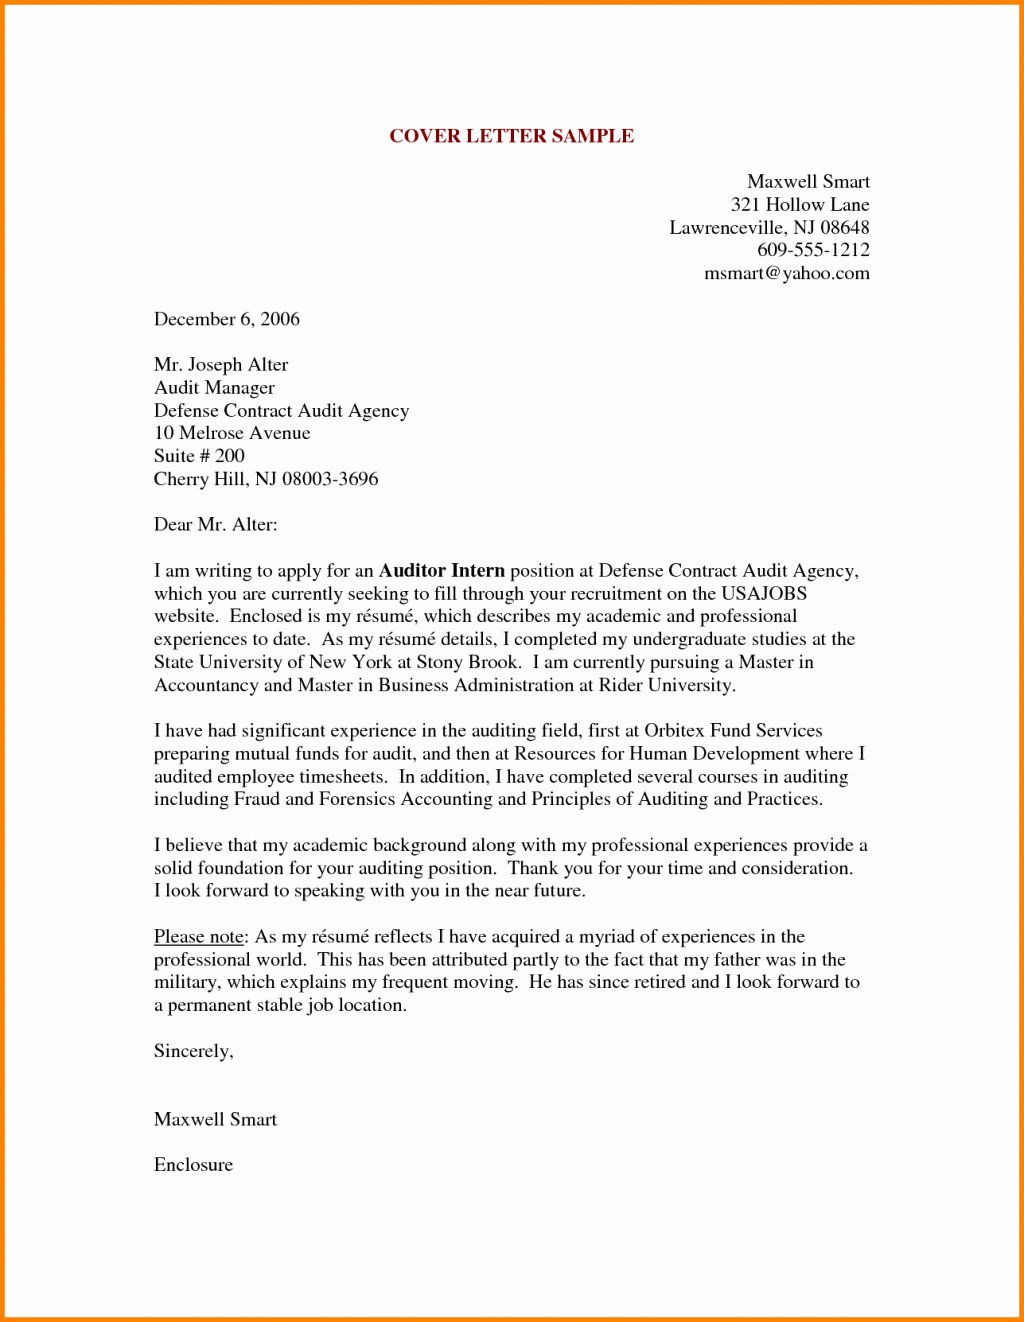 Temp to Perm Offer Letter Fresh Temp to Perm Fer Letter Template Examples